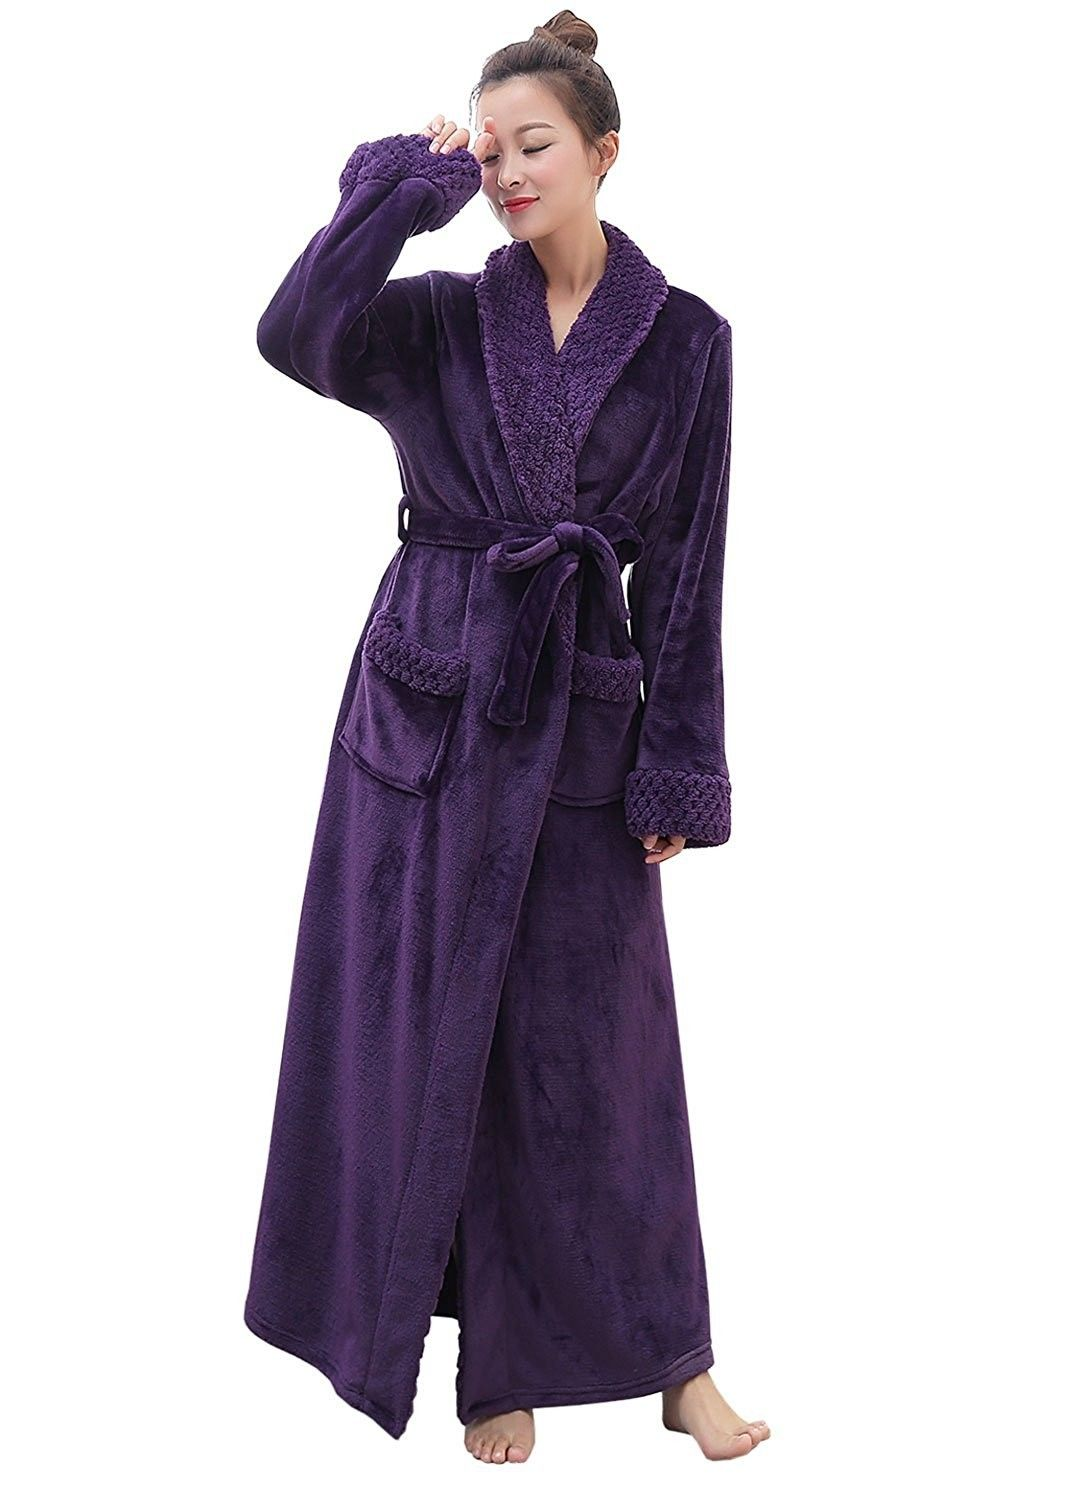 Long Bath Robe For Womens Plush Soft Fleece Bathrobes Night Robes ... f876d759d